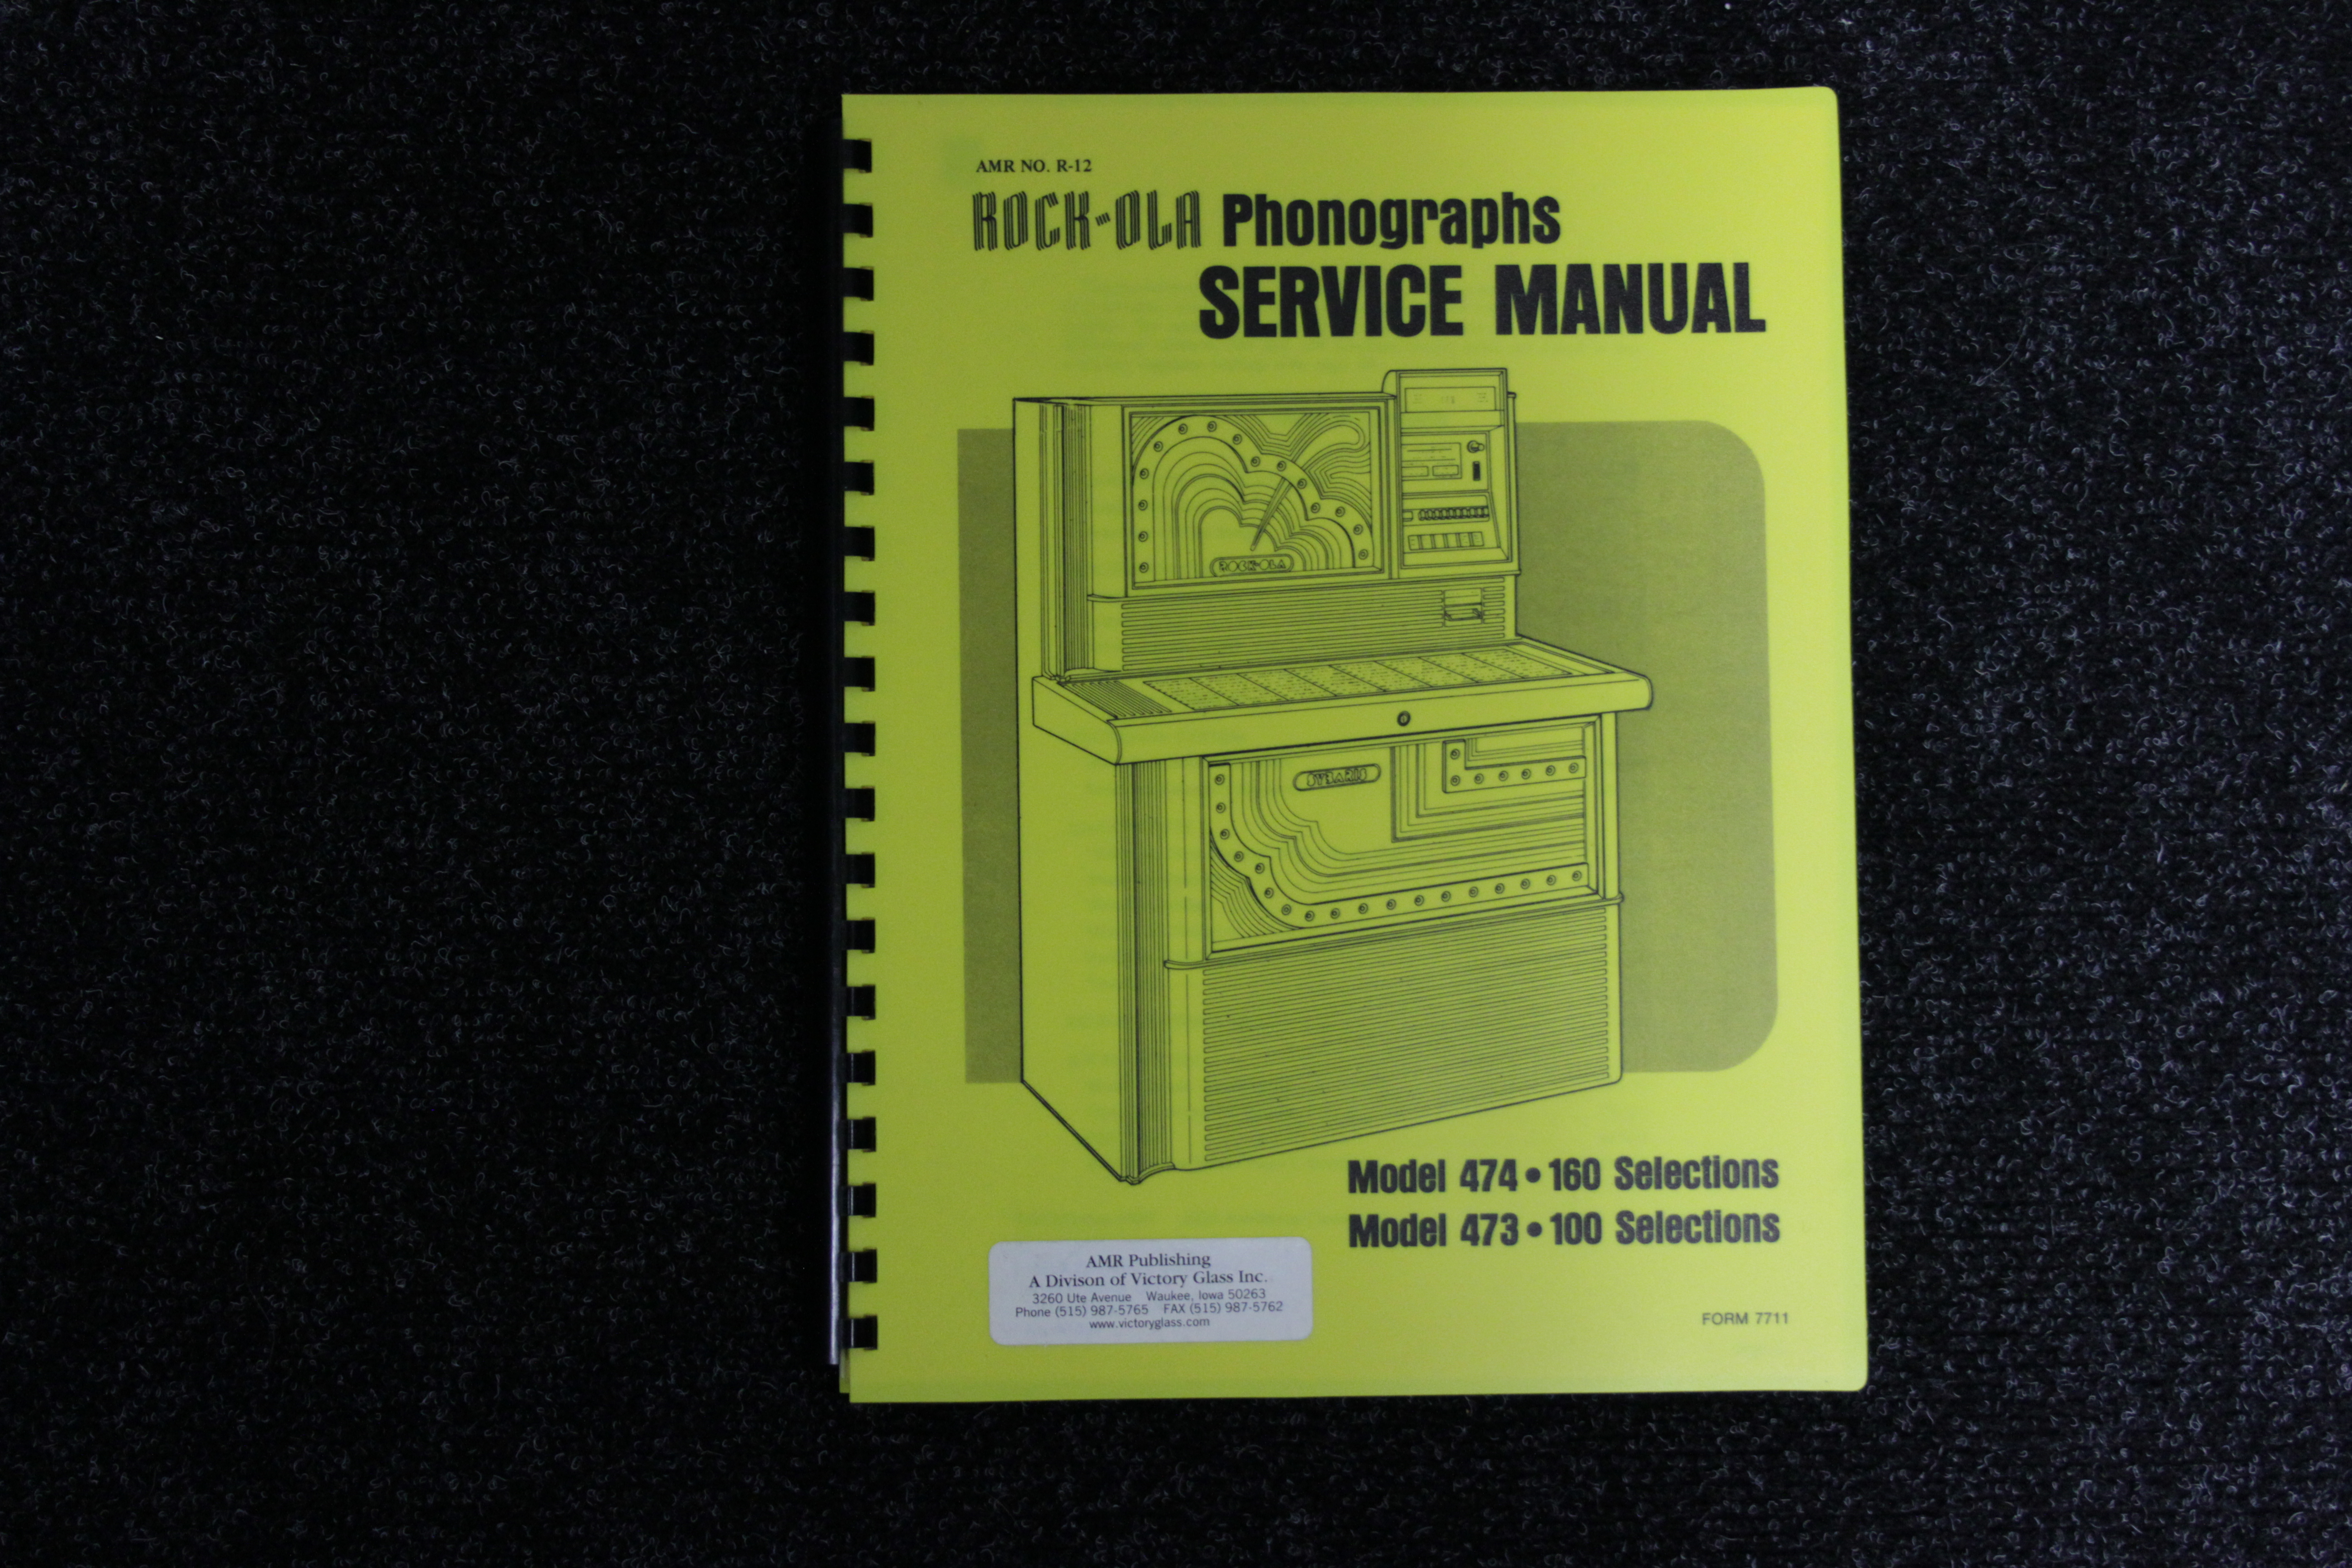 Rock-Ola Service Manual - Model 474 473